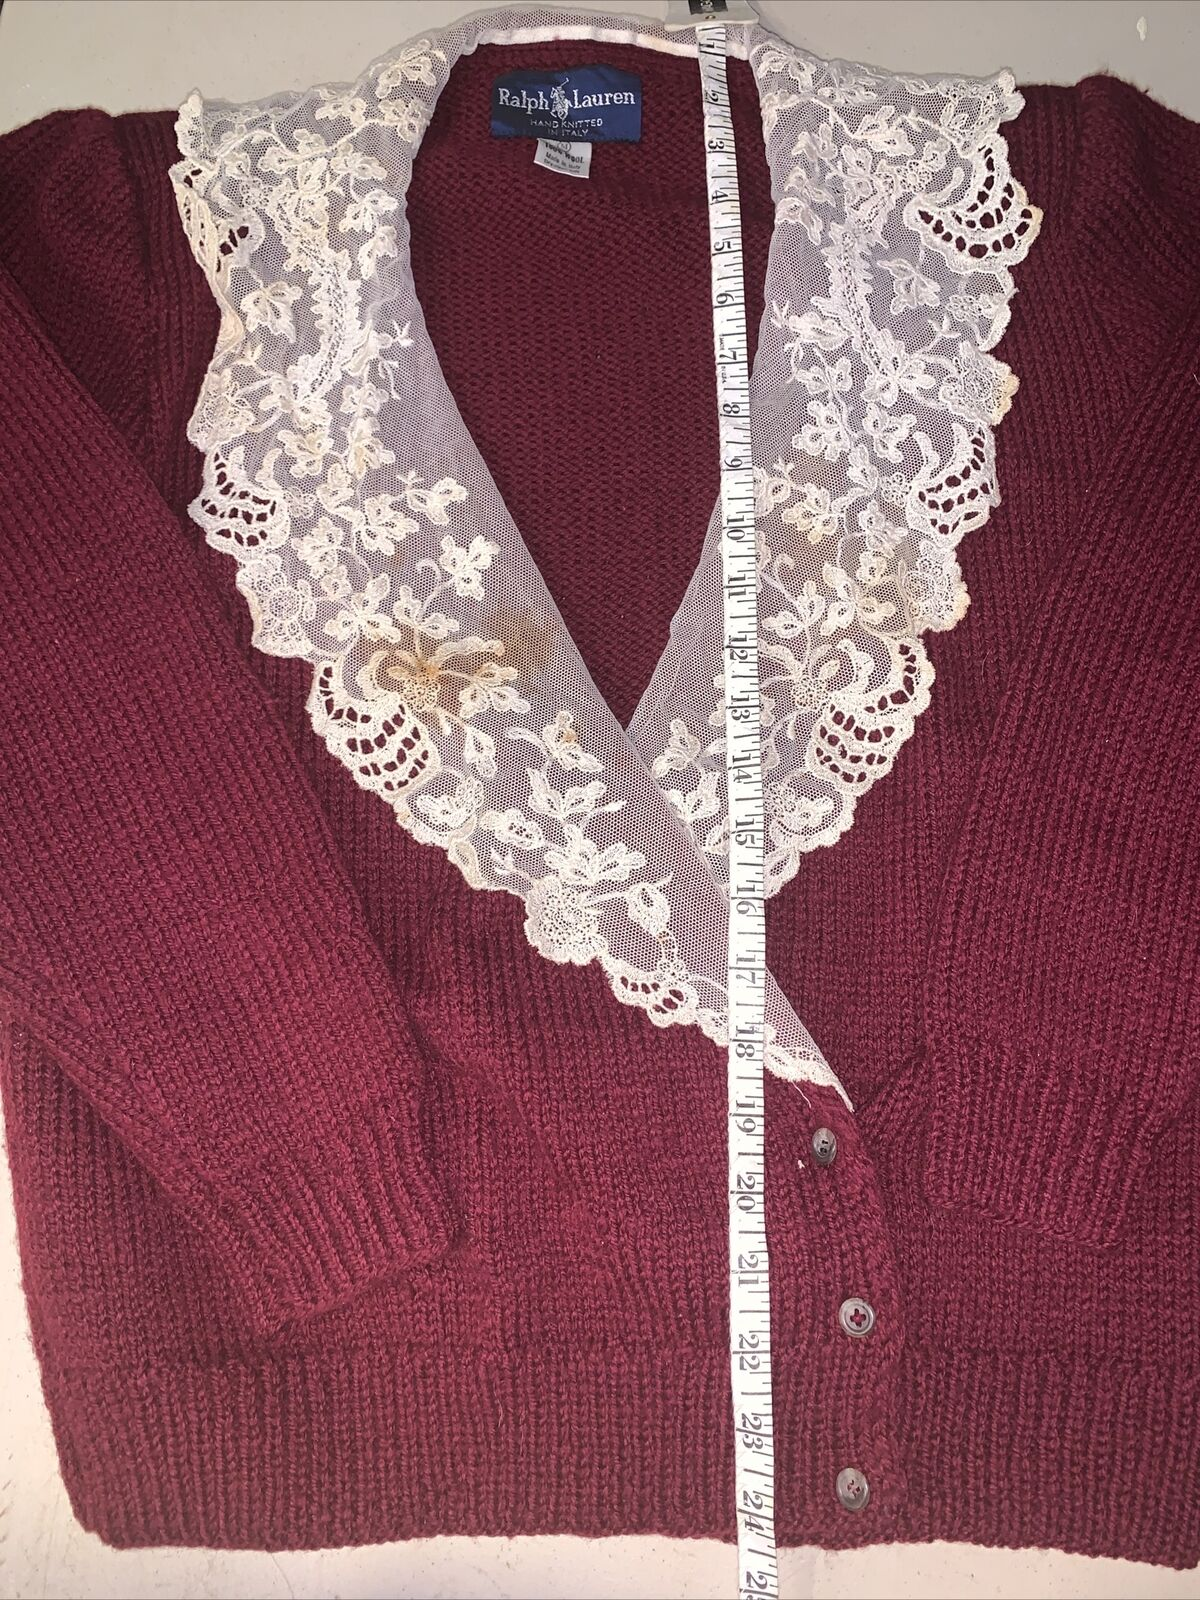 Vtg Ralph Lauren 1980's Wool Cardigan with Lace Collar Med shoulder pads maroon